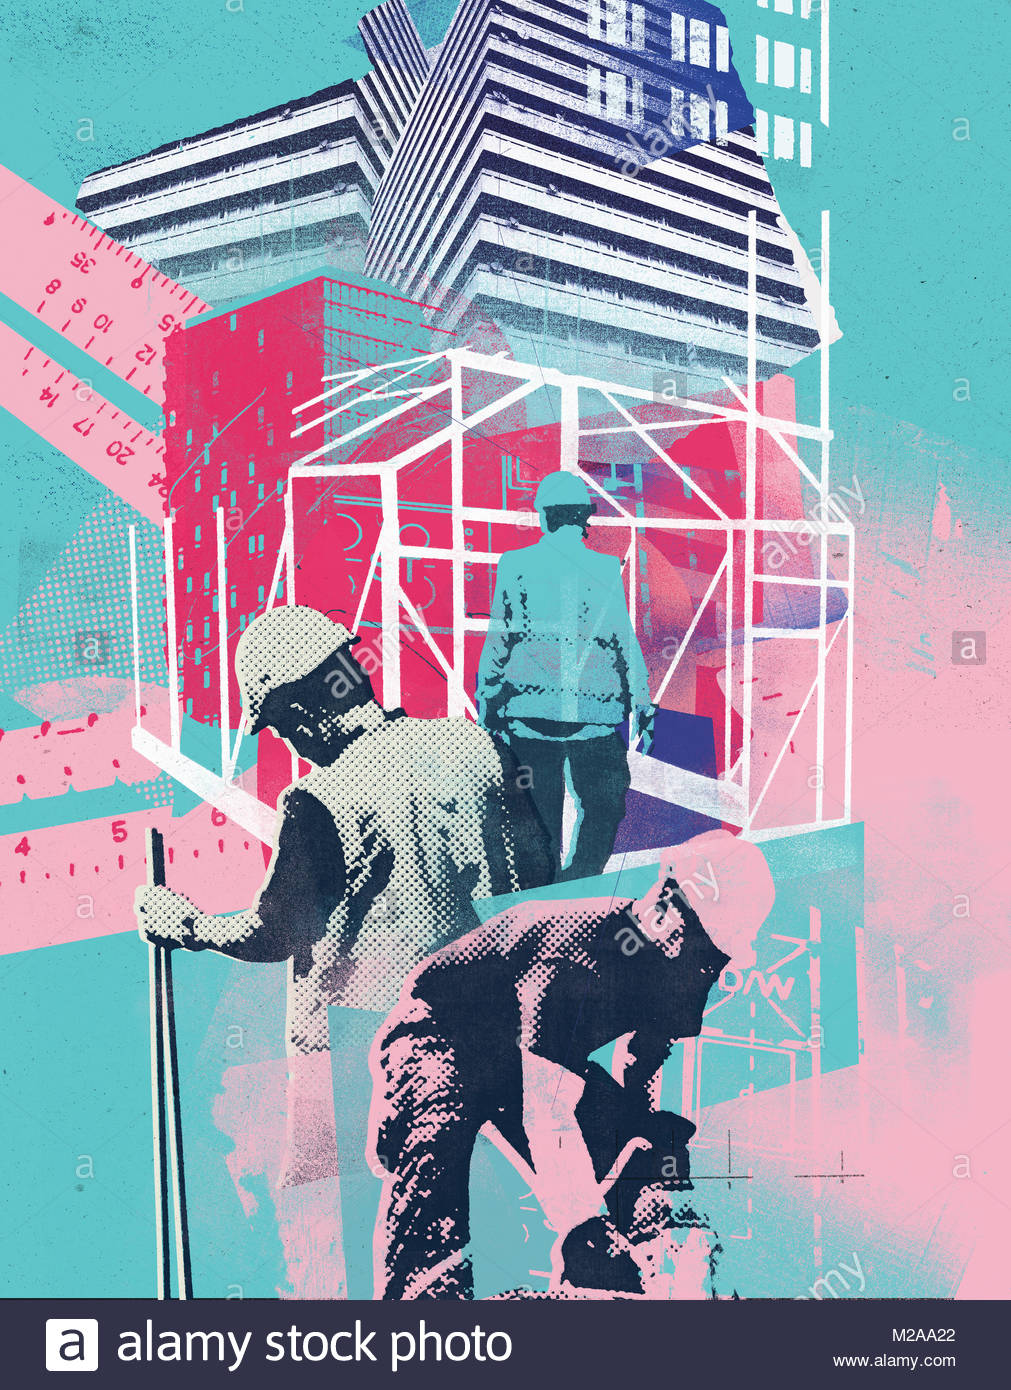 Collage of construction workers working on building site - Stock Image